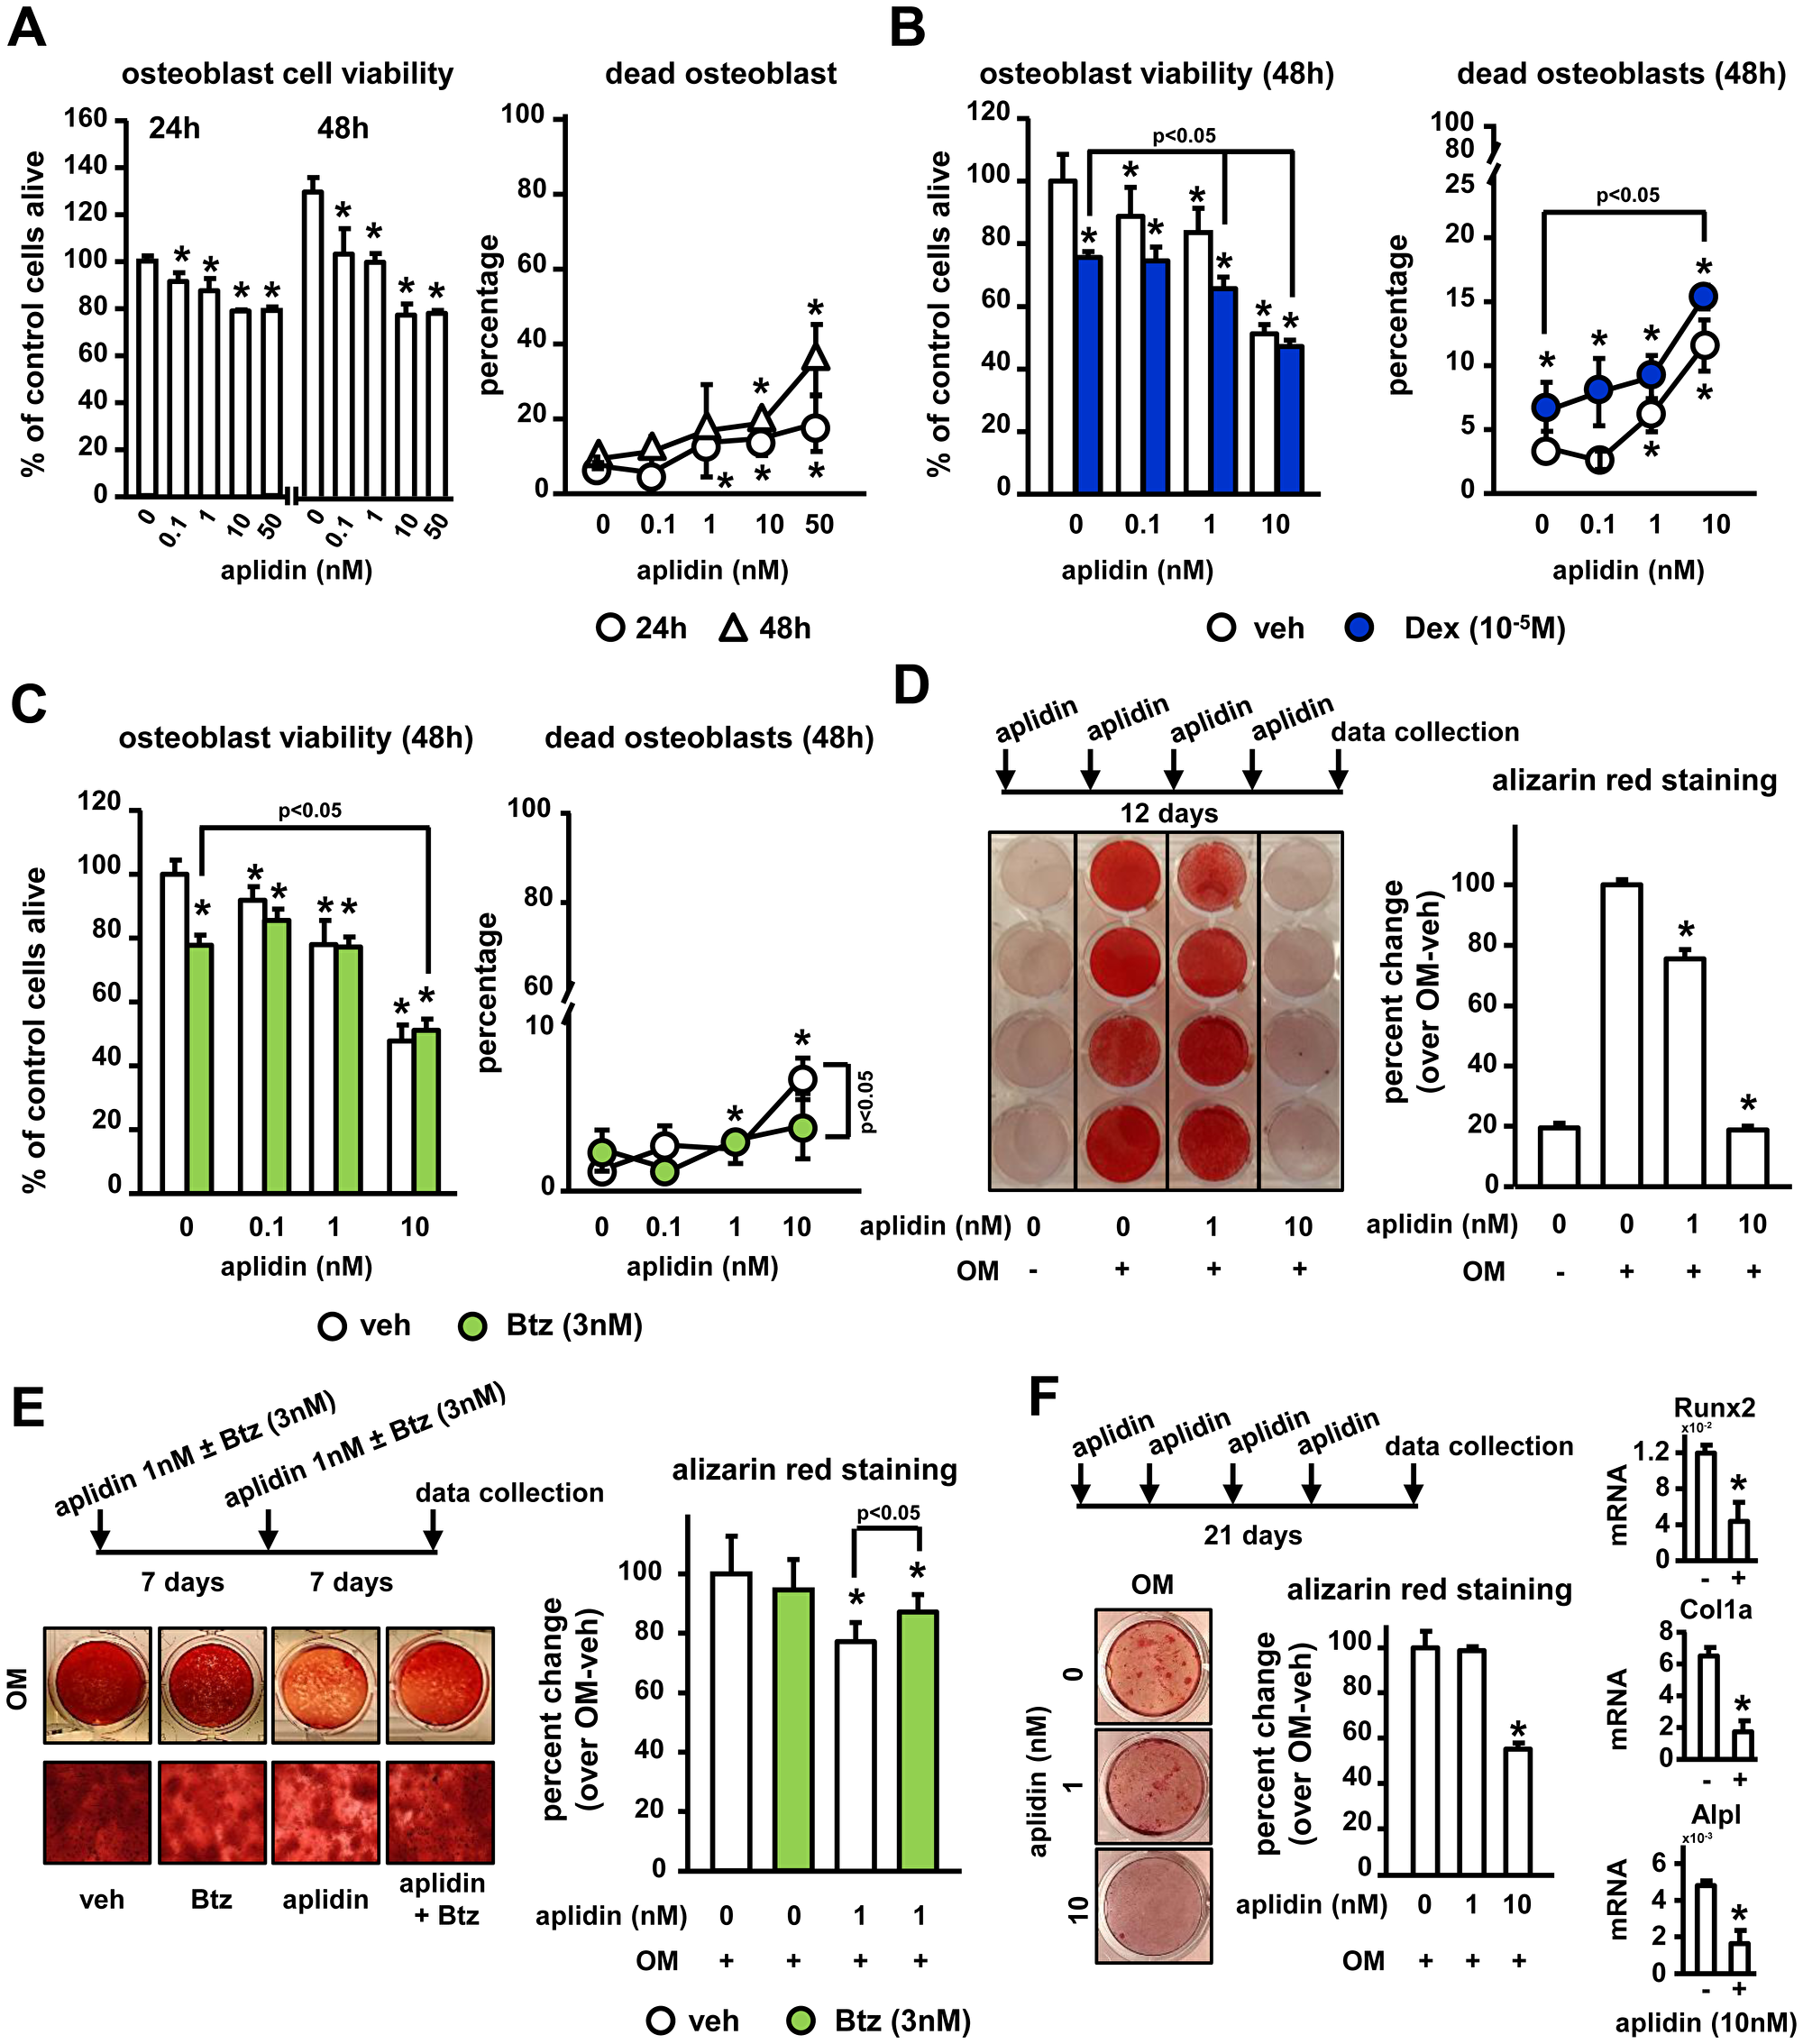 Aplidin decreases osteoblast viability and function and co-administration of Btz partially prevents these effects.